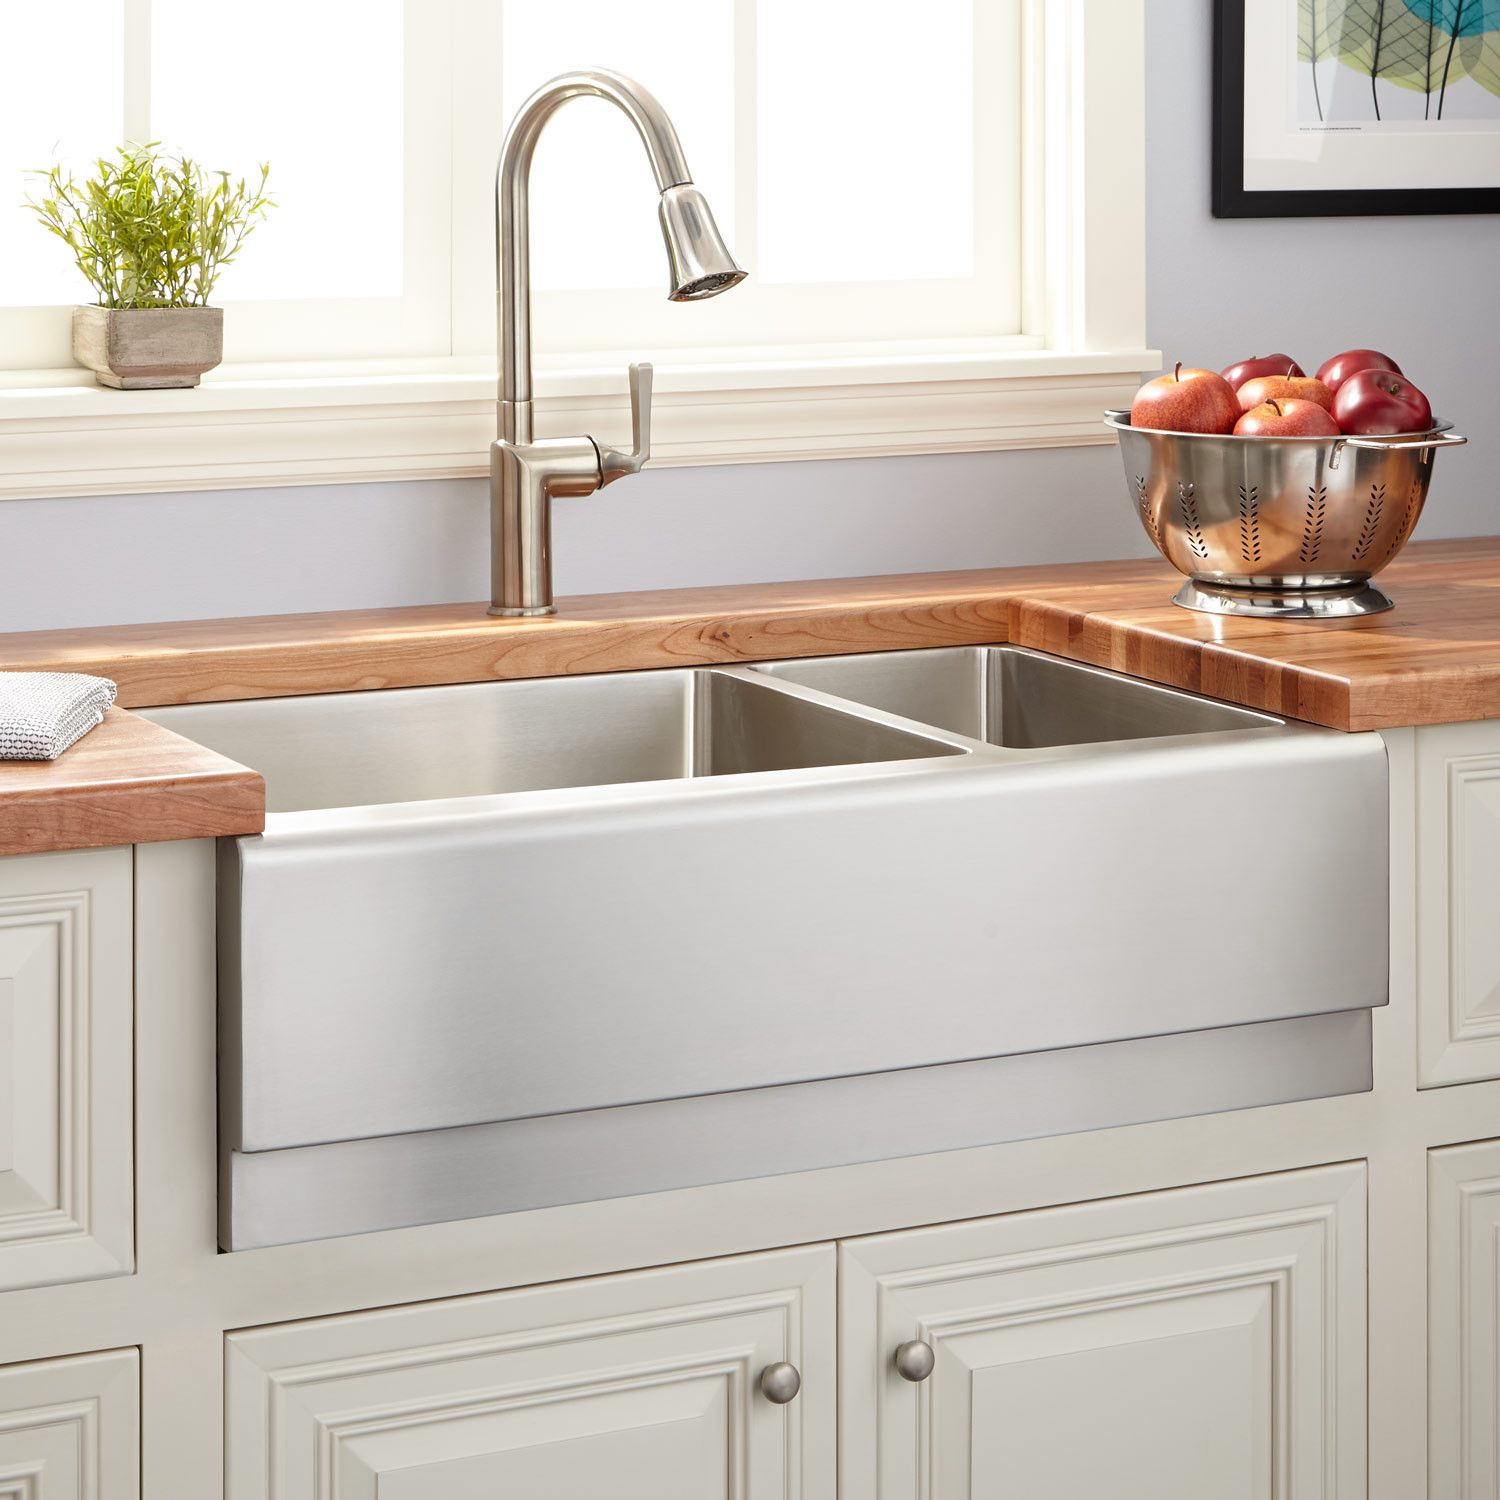 33 Piers 70 30 Offset Double Bowl Stainless Steel Farmhouse Sink Beveled Apron Kitche Stainless Steel Farmhouse Sink Farmhouse Sink Kitchen Farmhouse Sink